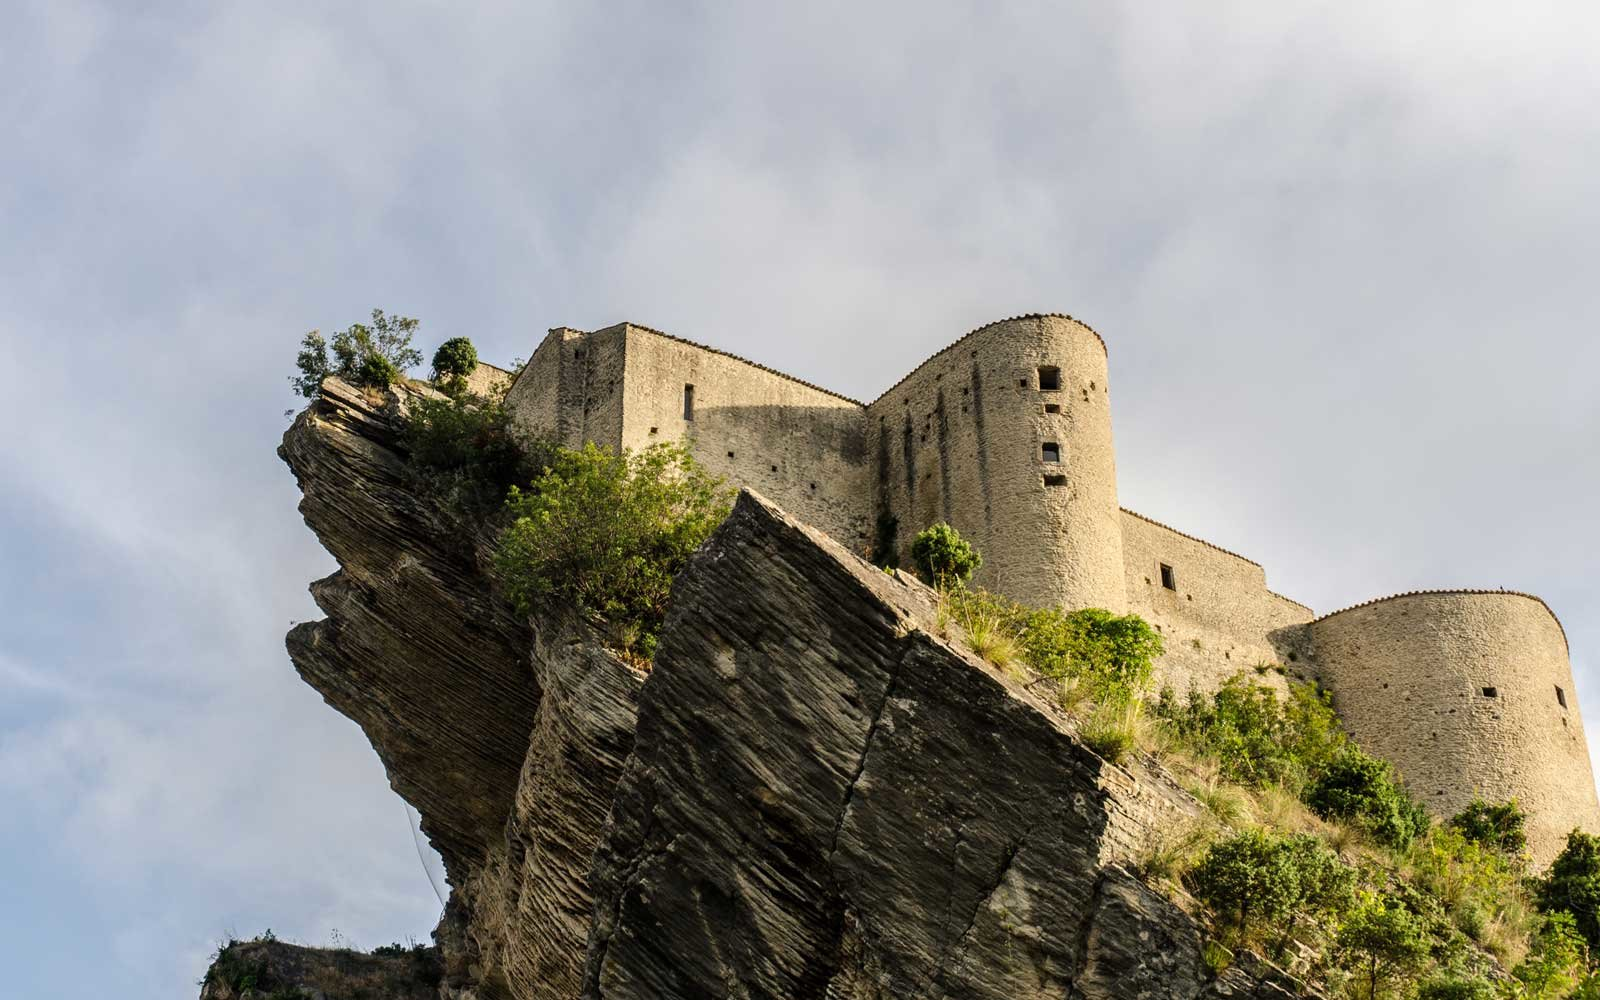 You can stay in an Italian medieval fortress known as the Castle in the Sky for just 114 per night foto